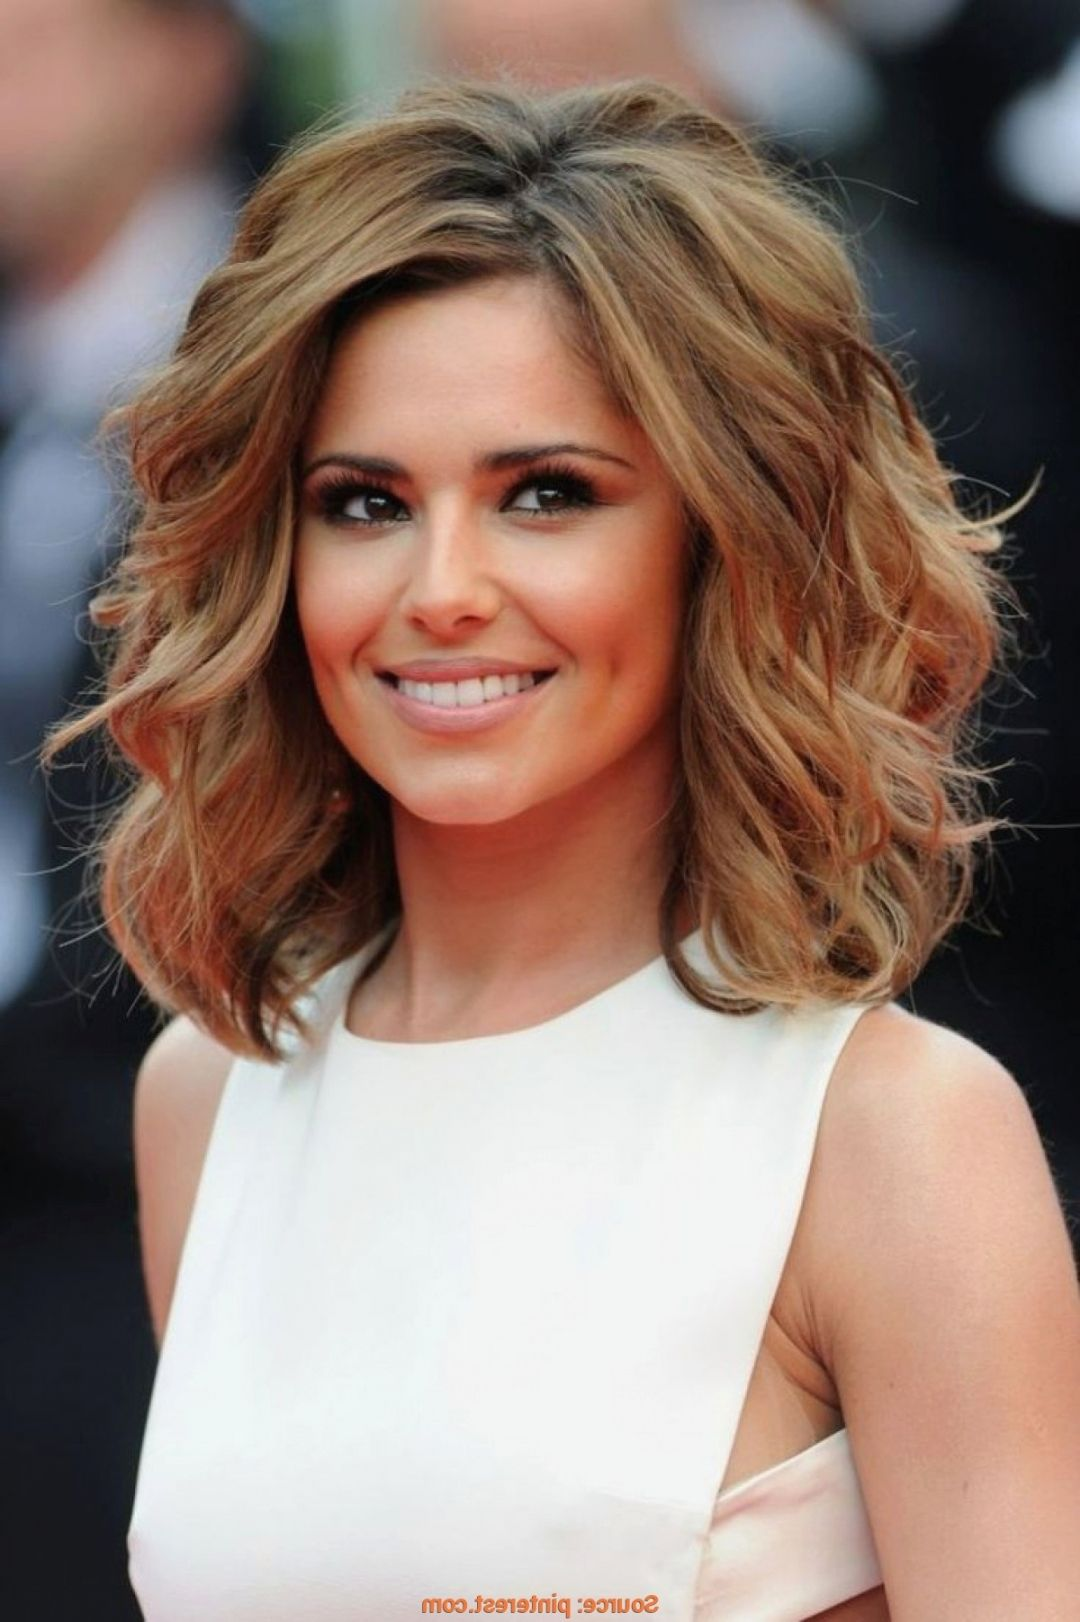 luxury hairstyles with natural curls inspiration-Lovely hairstyles with nature curls ideas